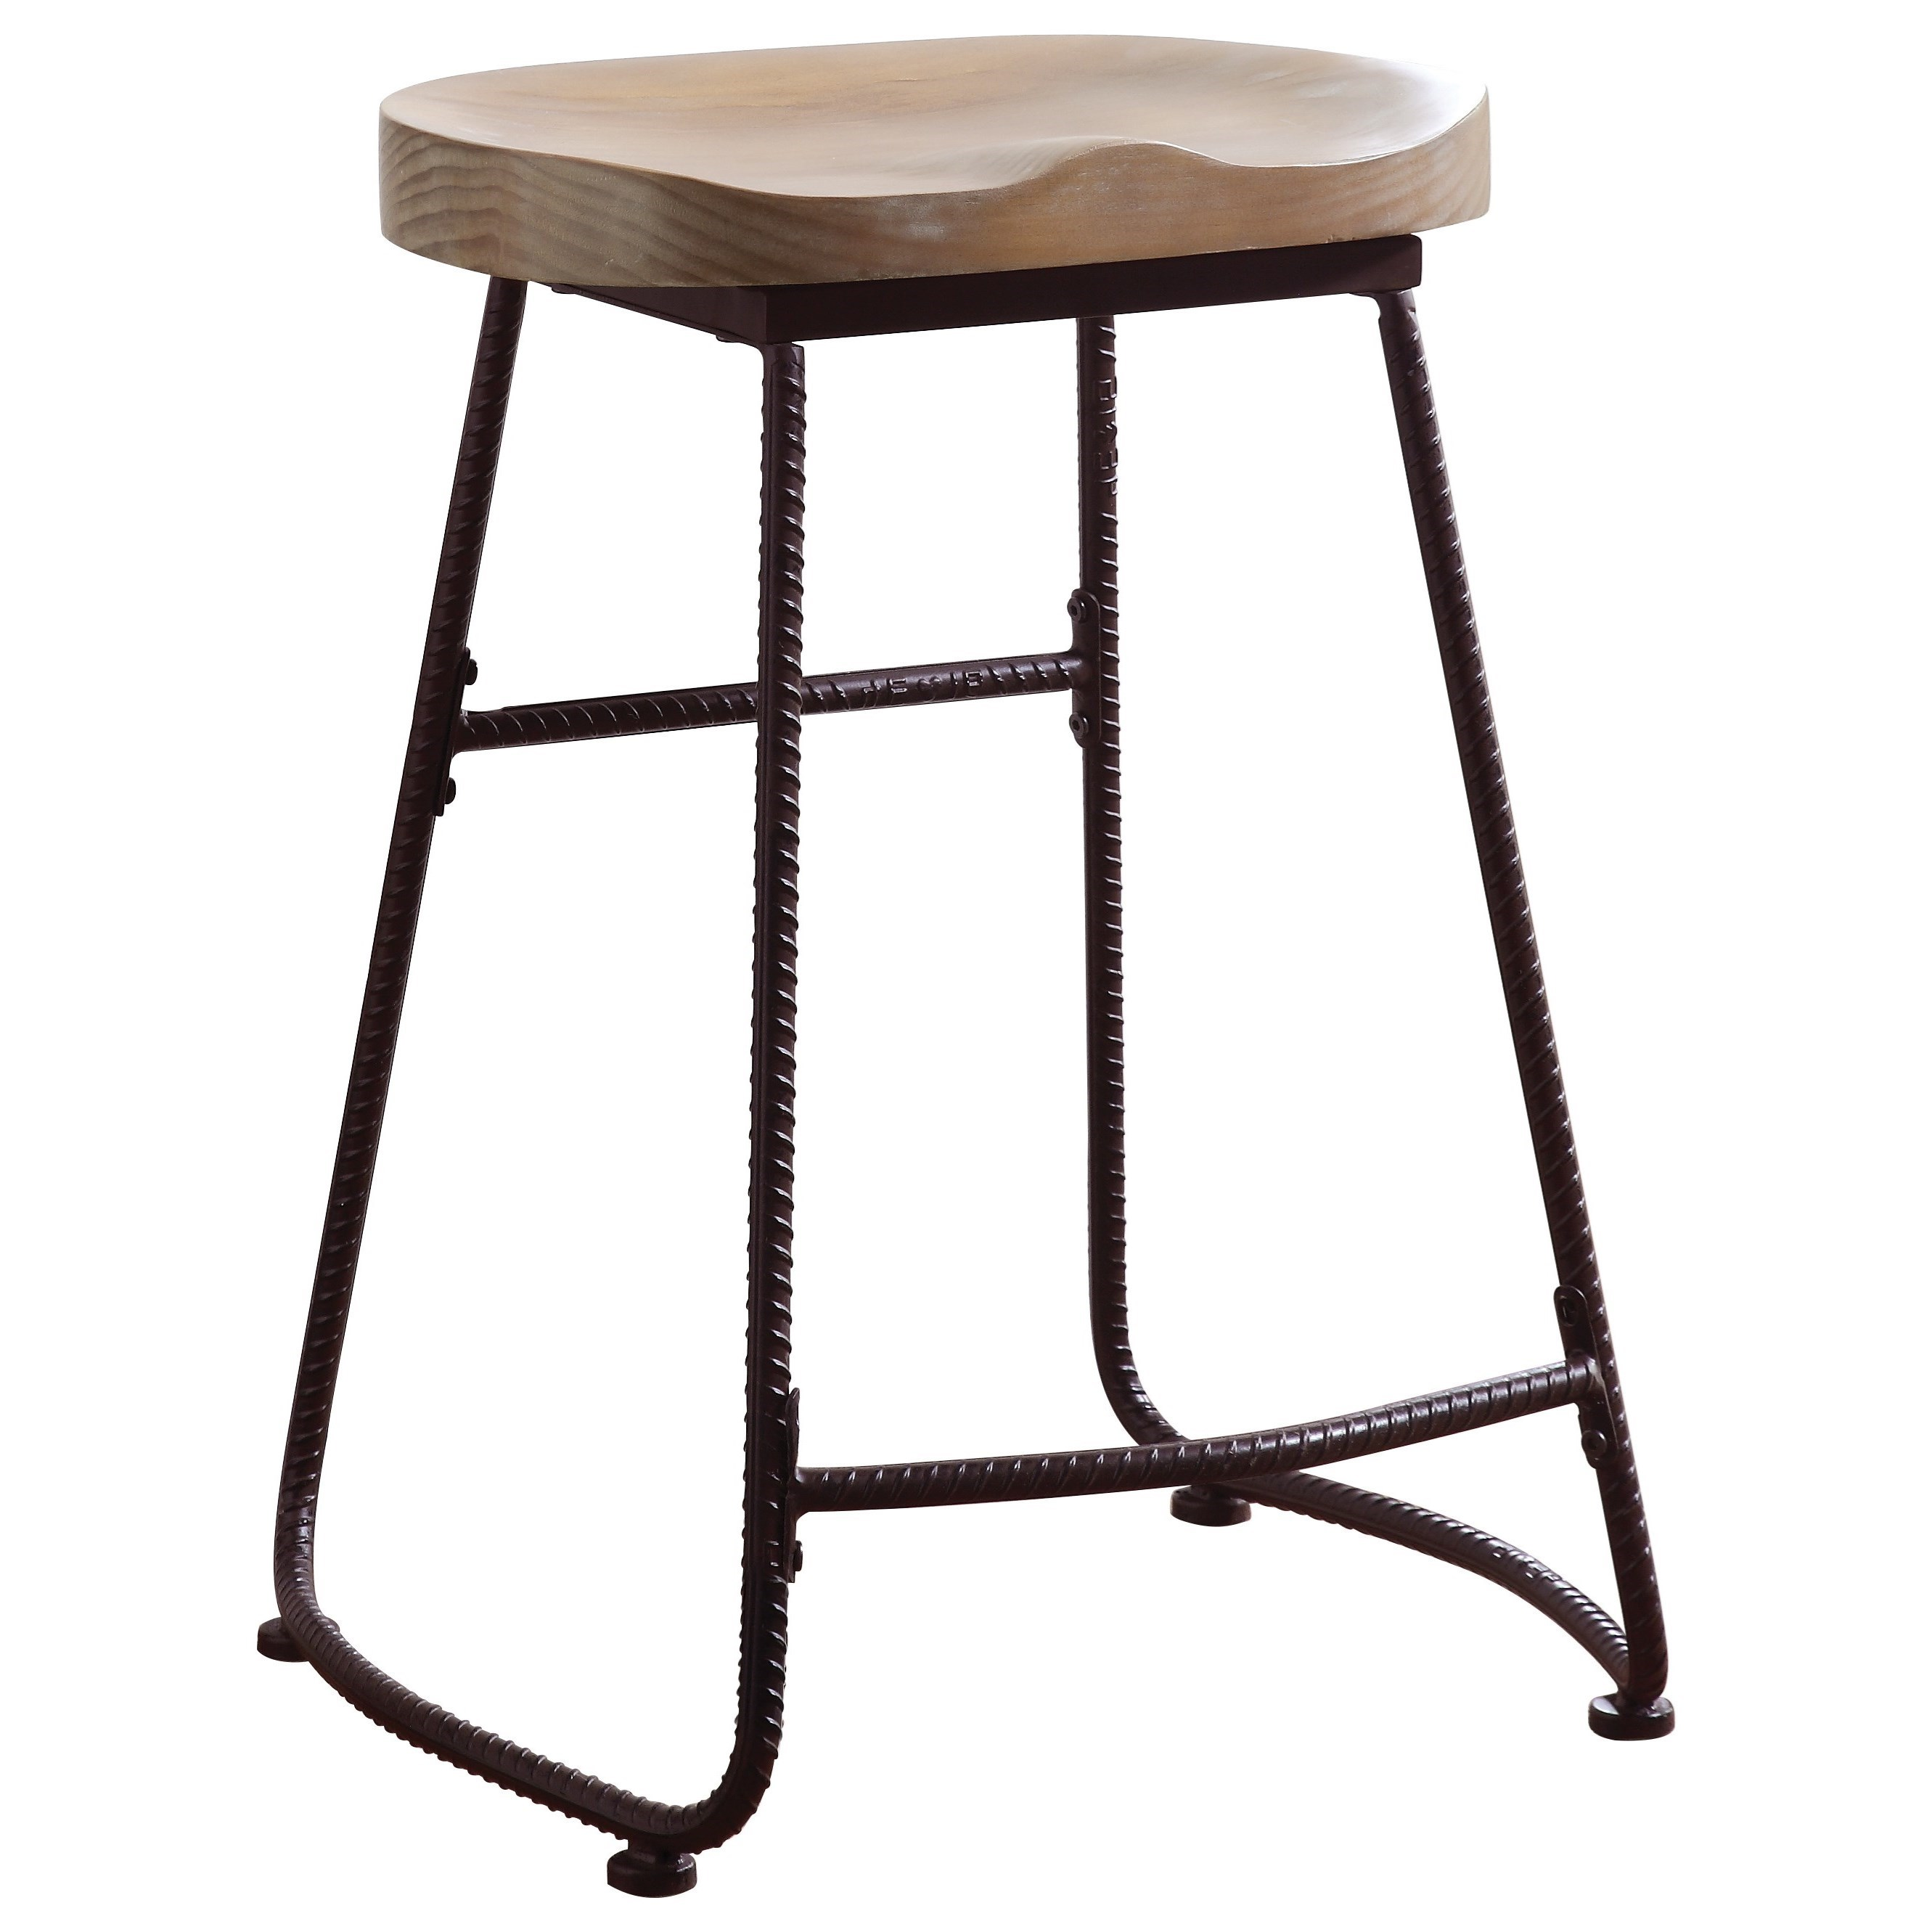 Coaster Dining Chairs and Bar Stools Rustic Counter Height